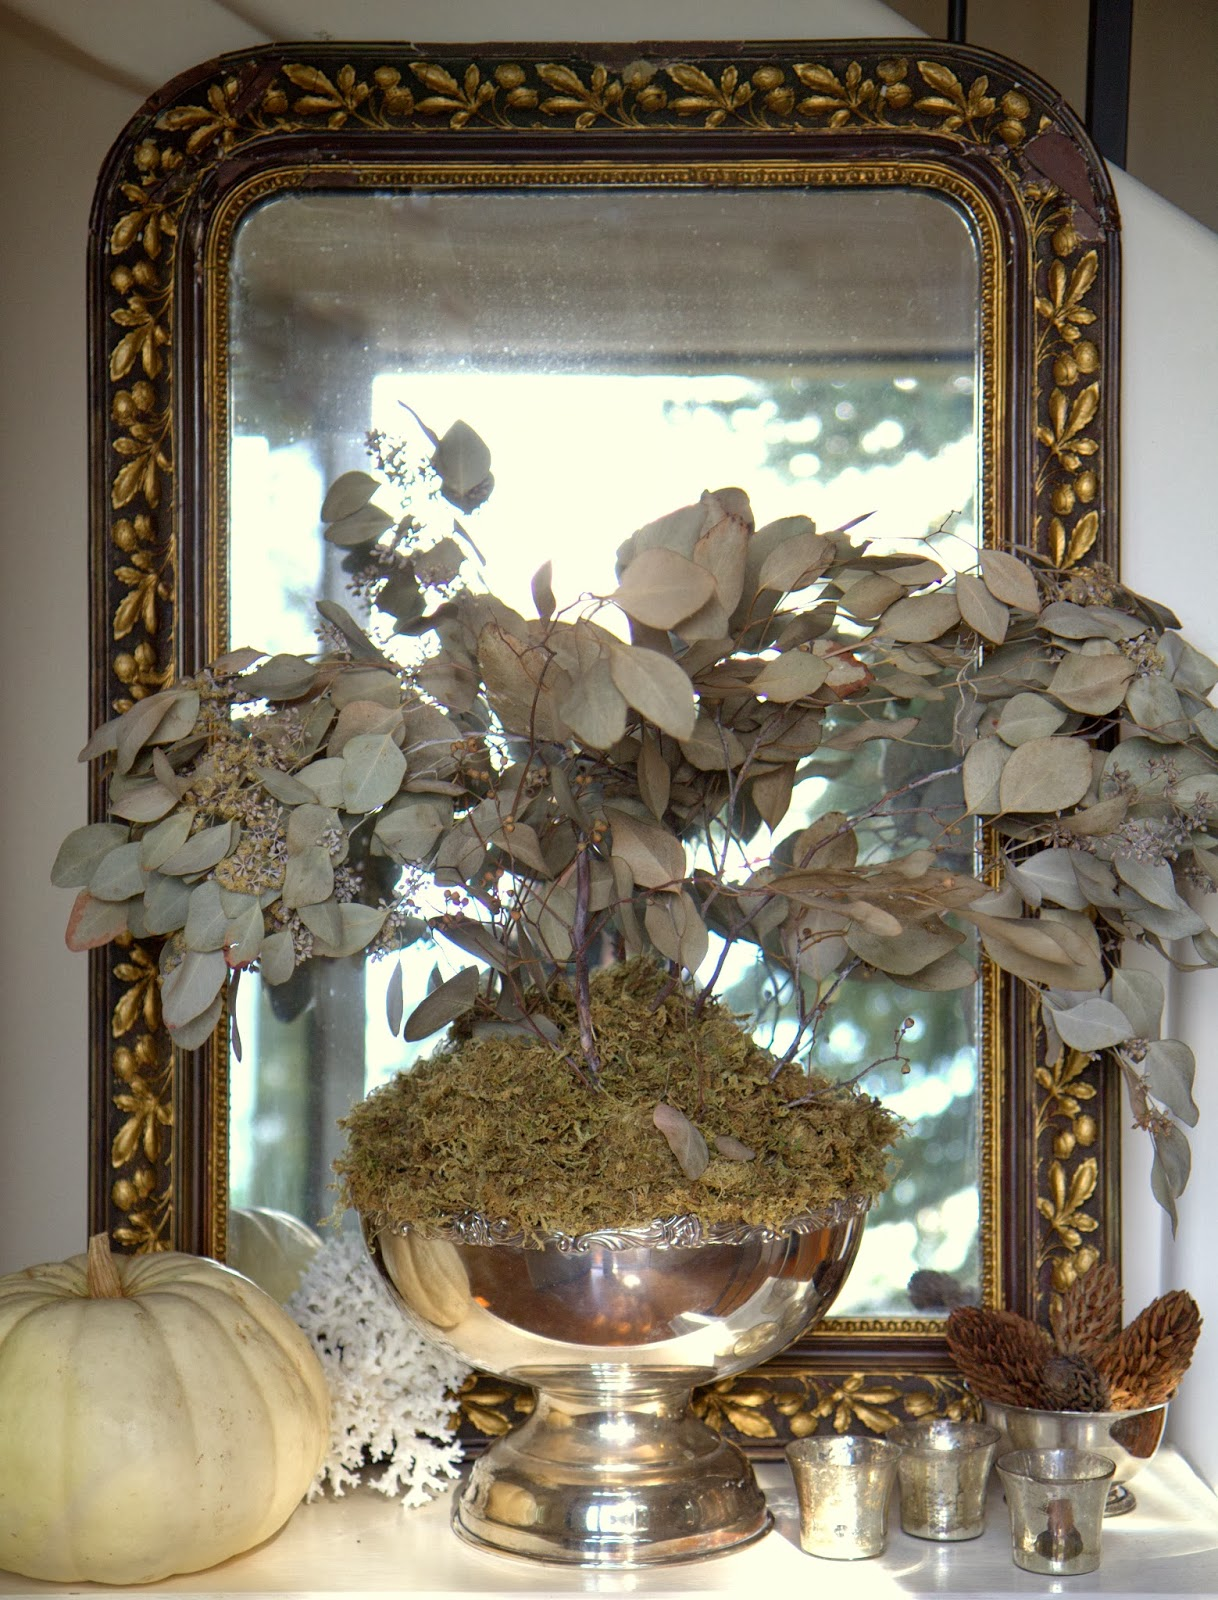 Autumn Leaf Bouquet in My Foyer